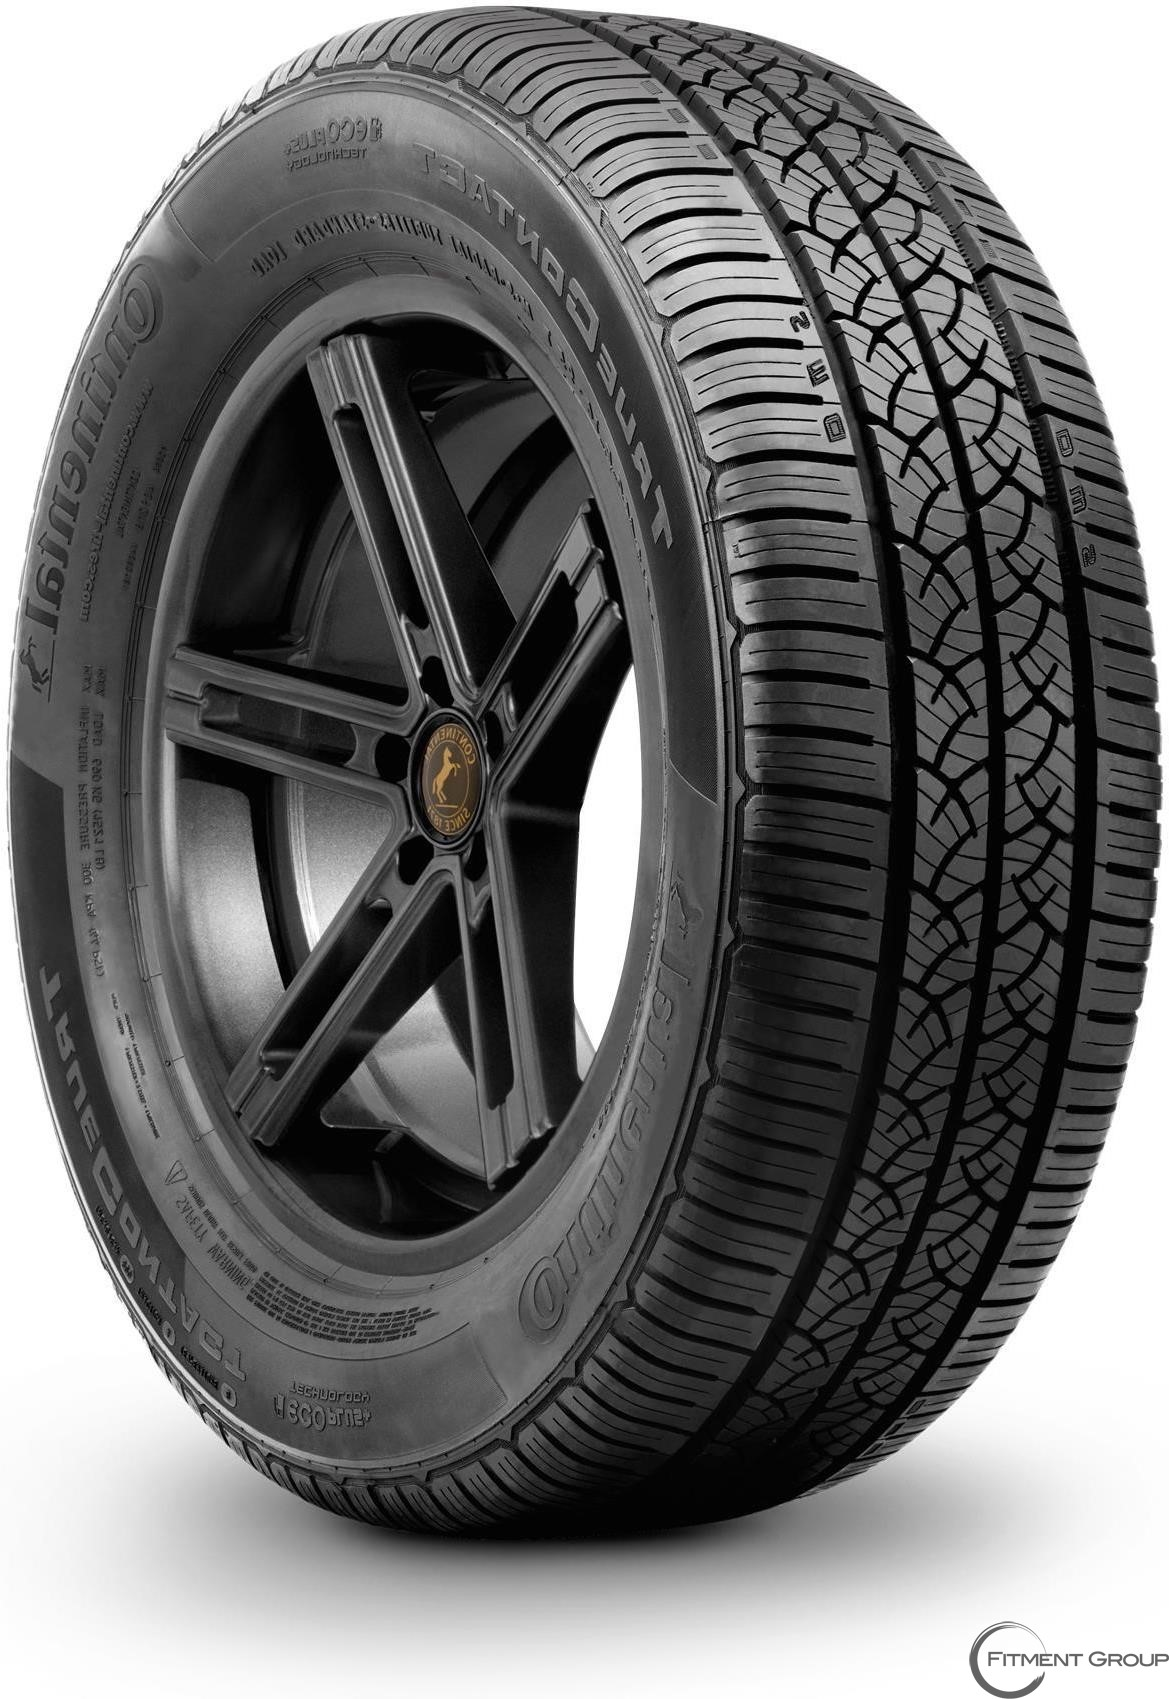 195 65 R15 Continental Continental Big Brand Tire Service Has A Large Selection Of